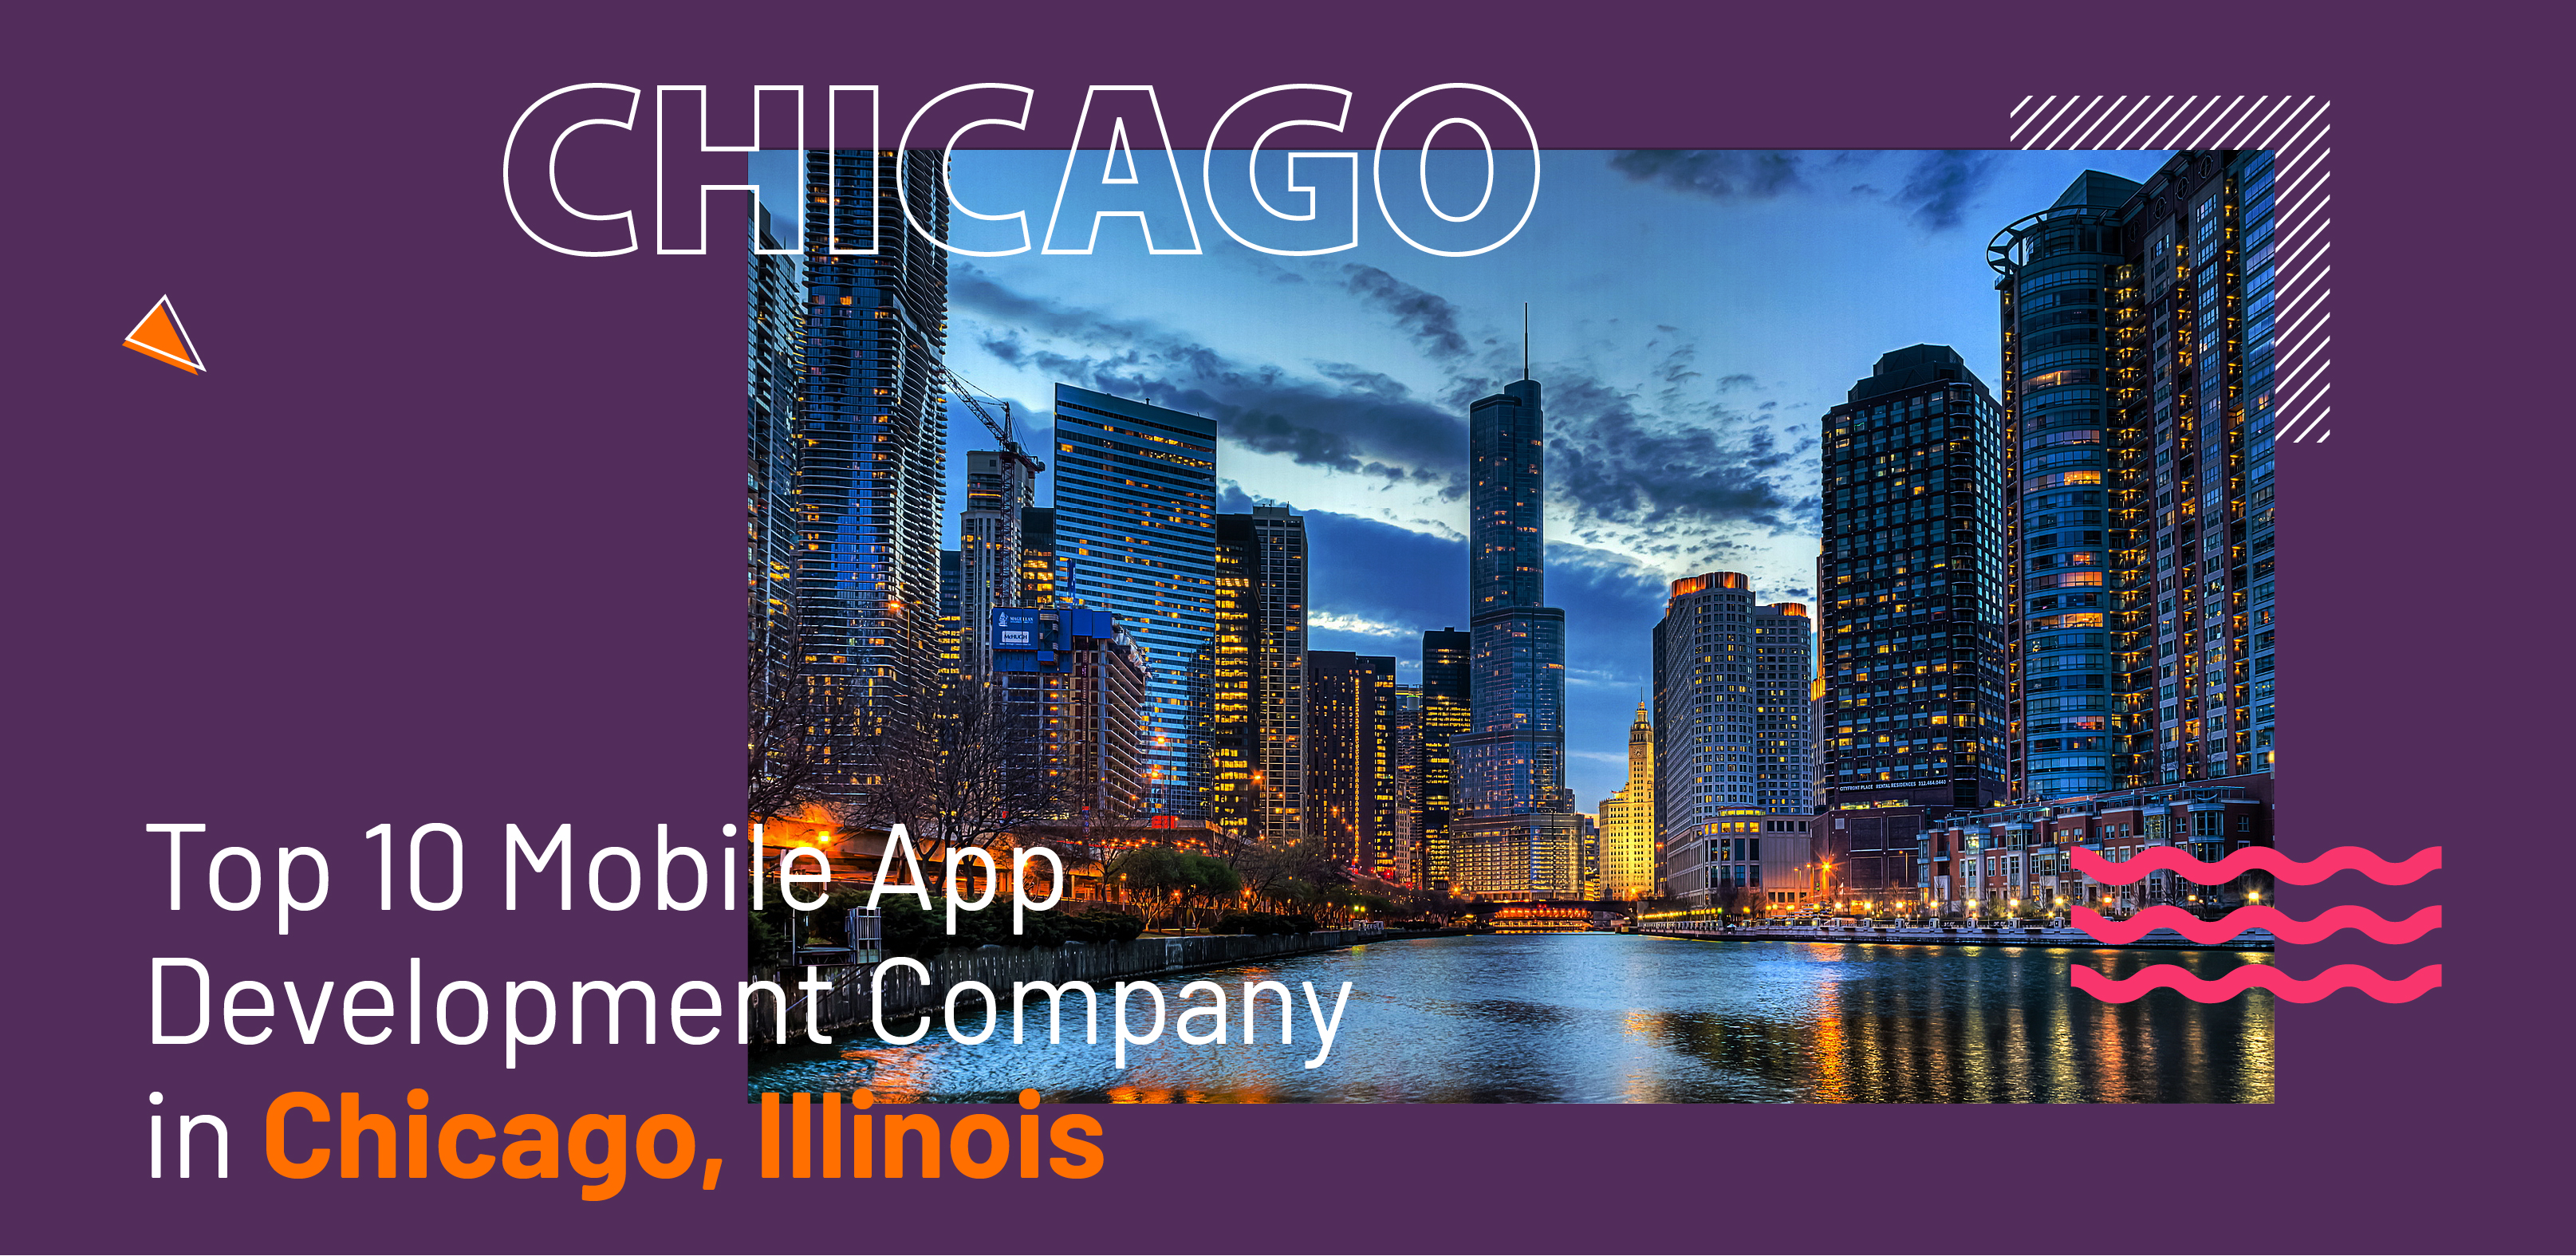 Top 10 Mobile App Development Company in Chicago, Illinois - WebClues Infotech